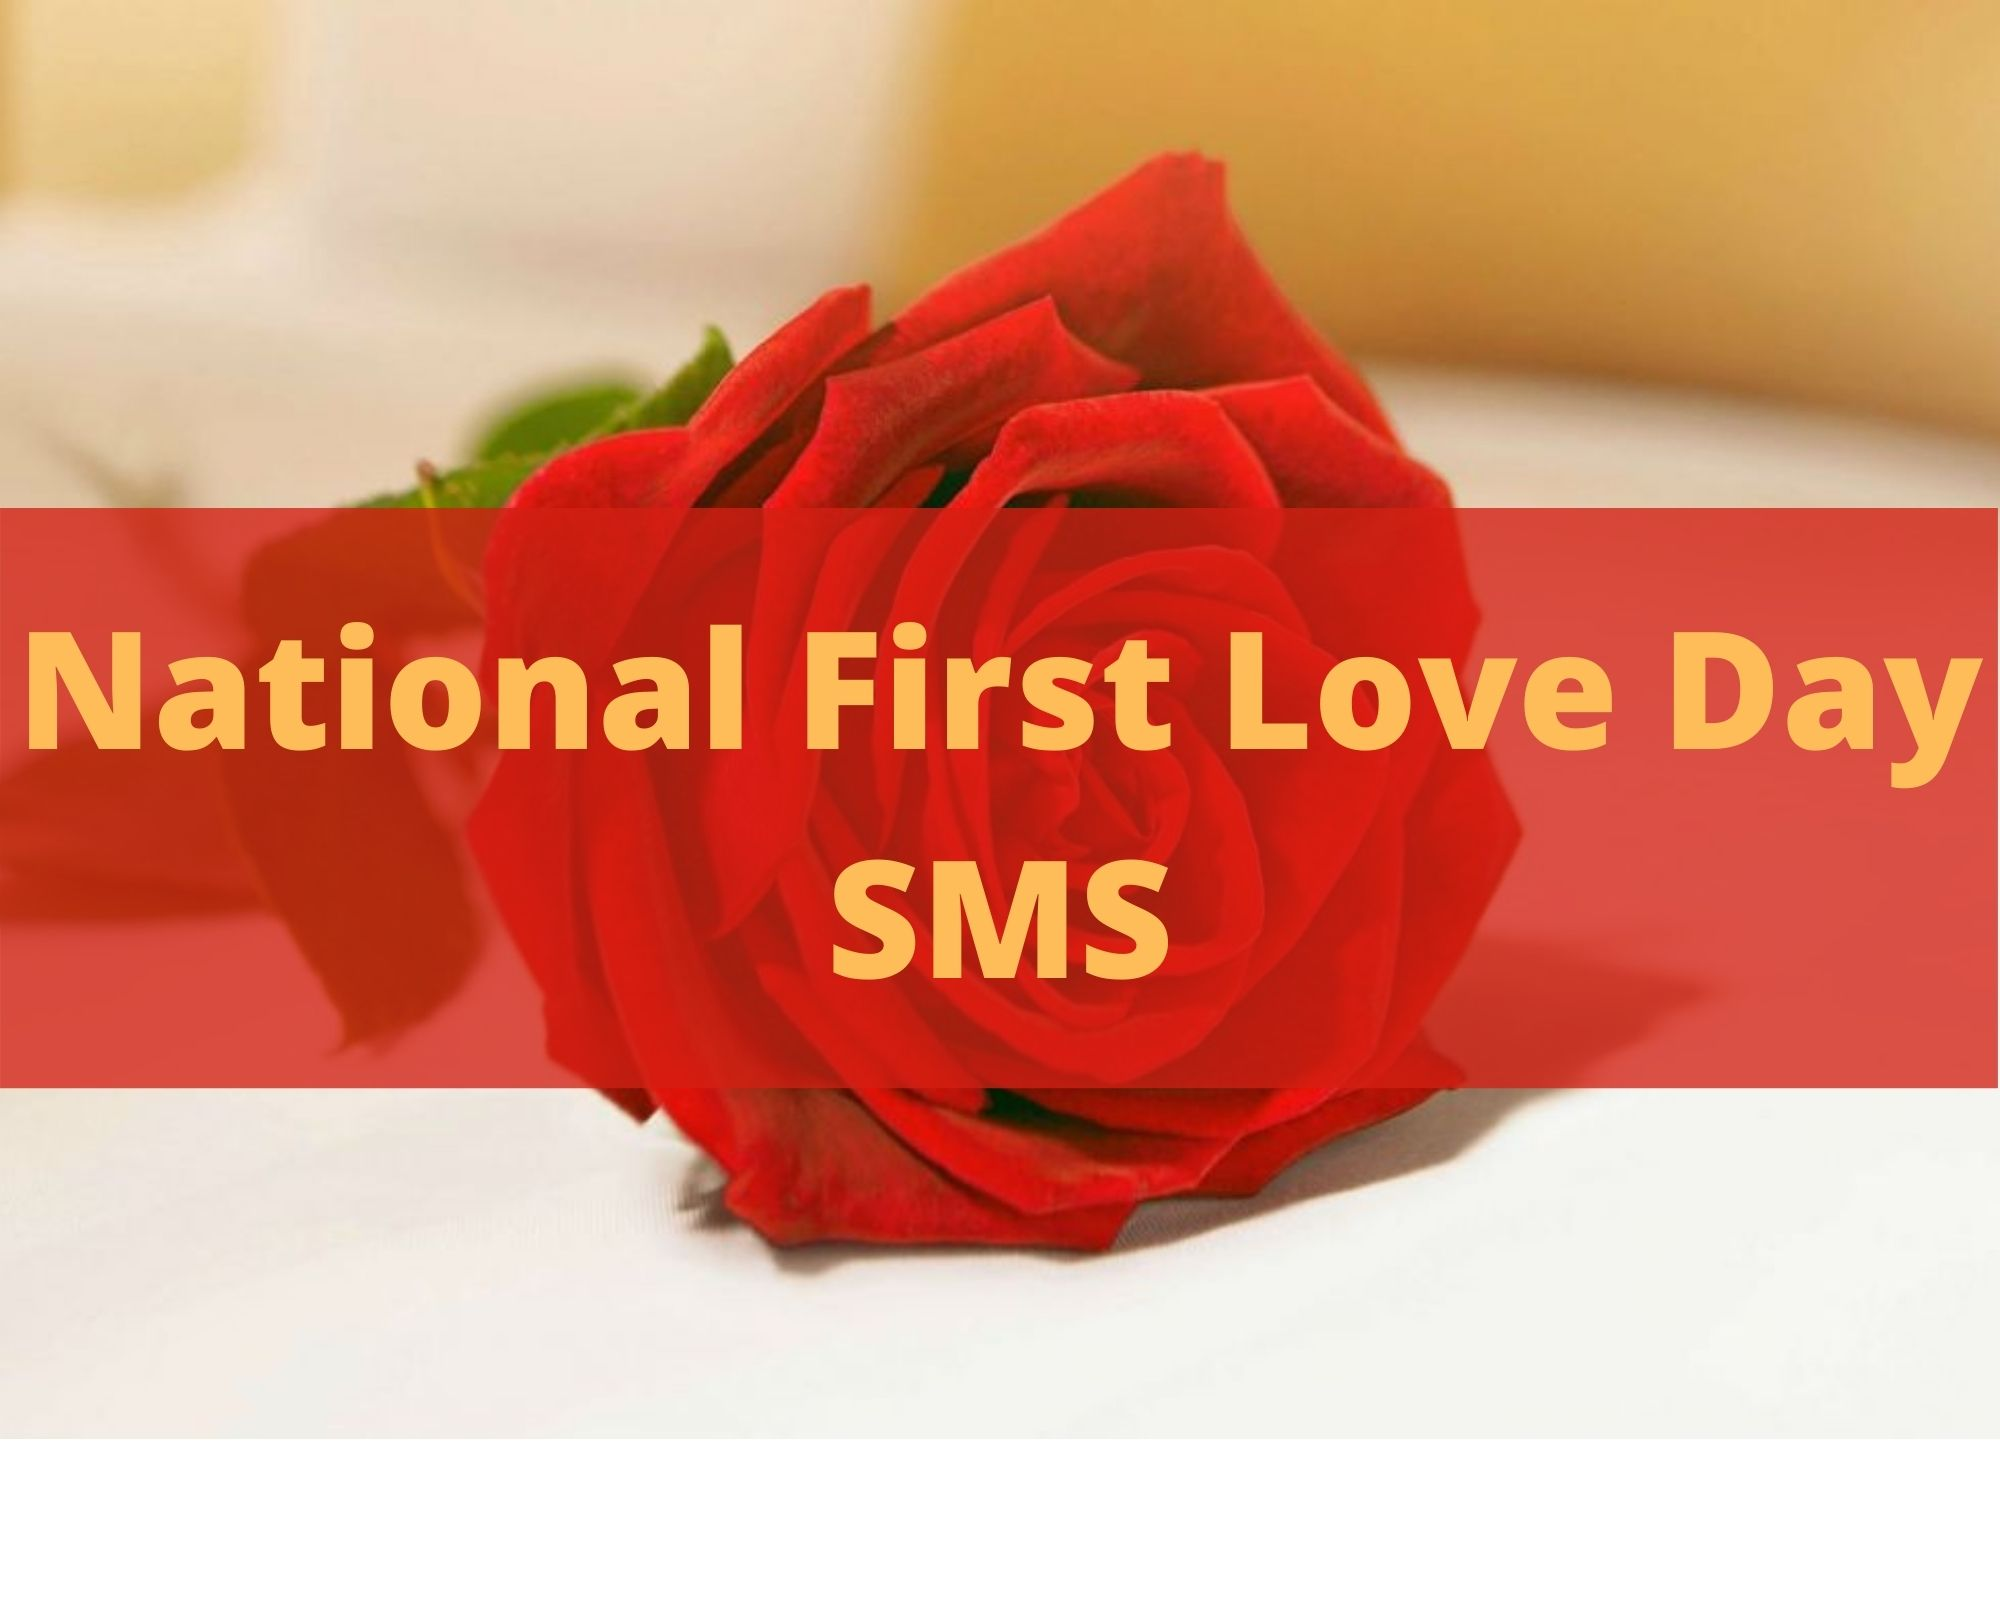 National First Love Day SMS